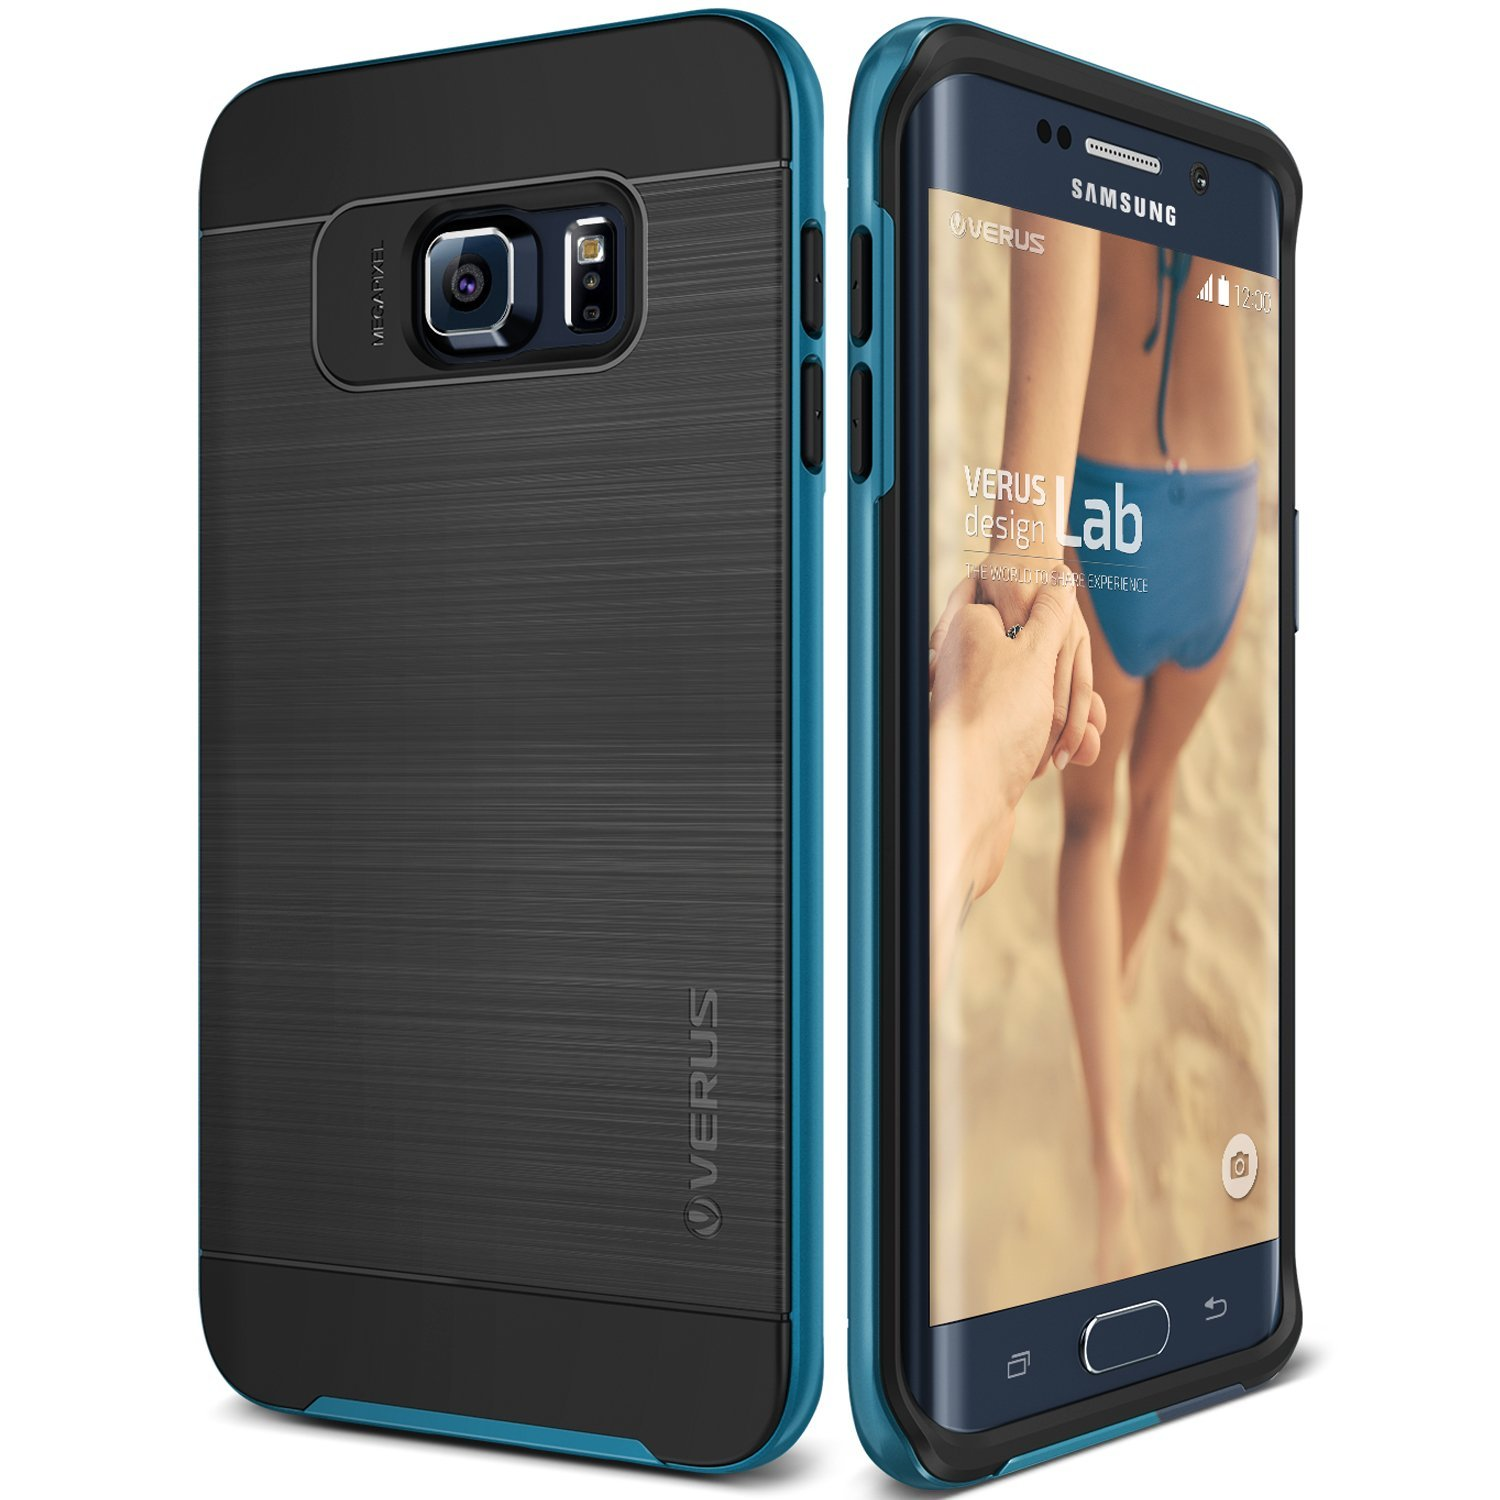 Verus Θήκη High Pro Shield Series Samsung Galaxy S6 Edge Plus - Electric Blue